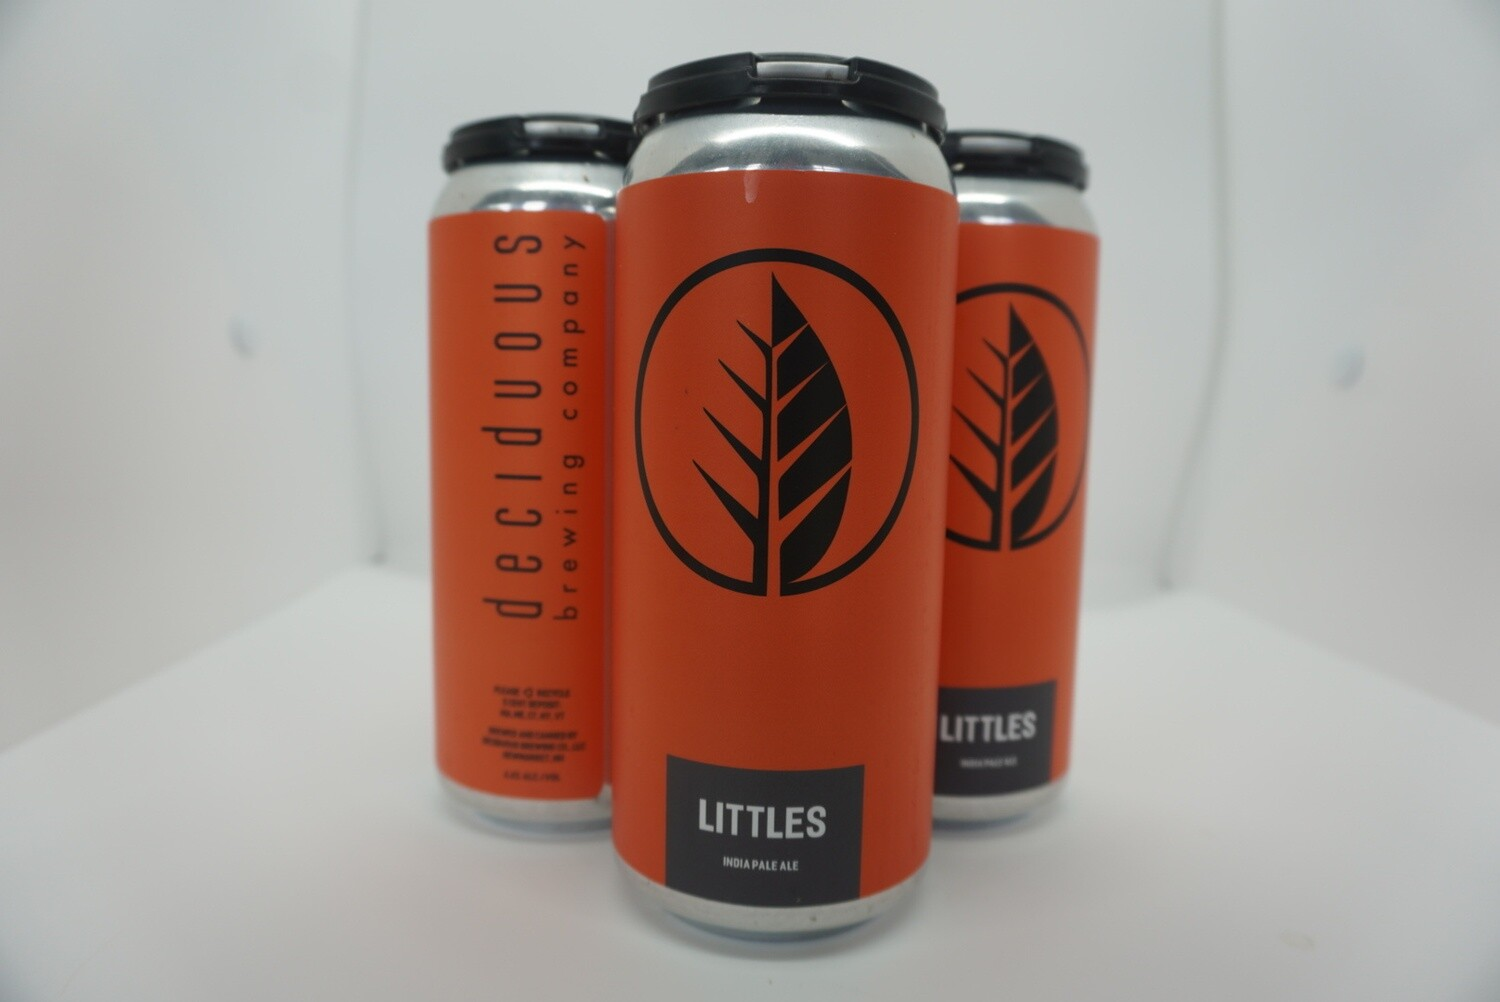 Deciduous - Littles - NEIPA - 6.6% ABV - 4 Pack